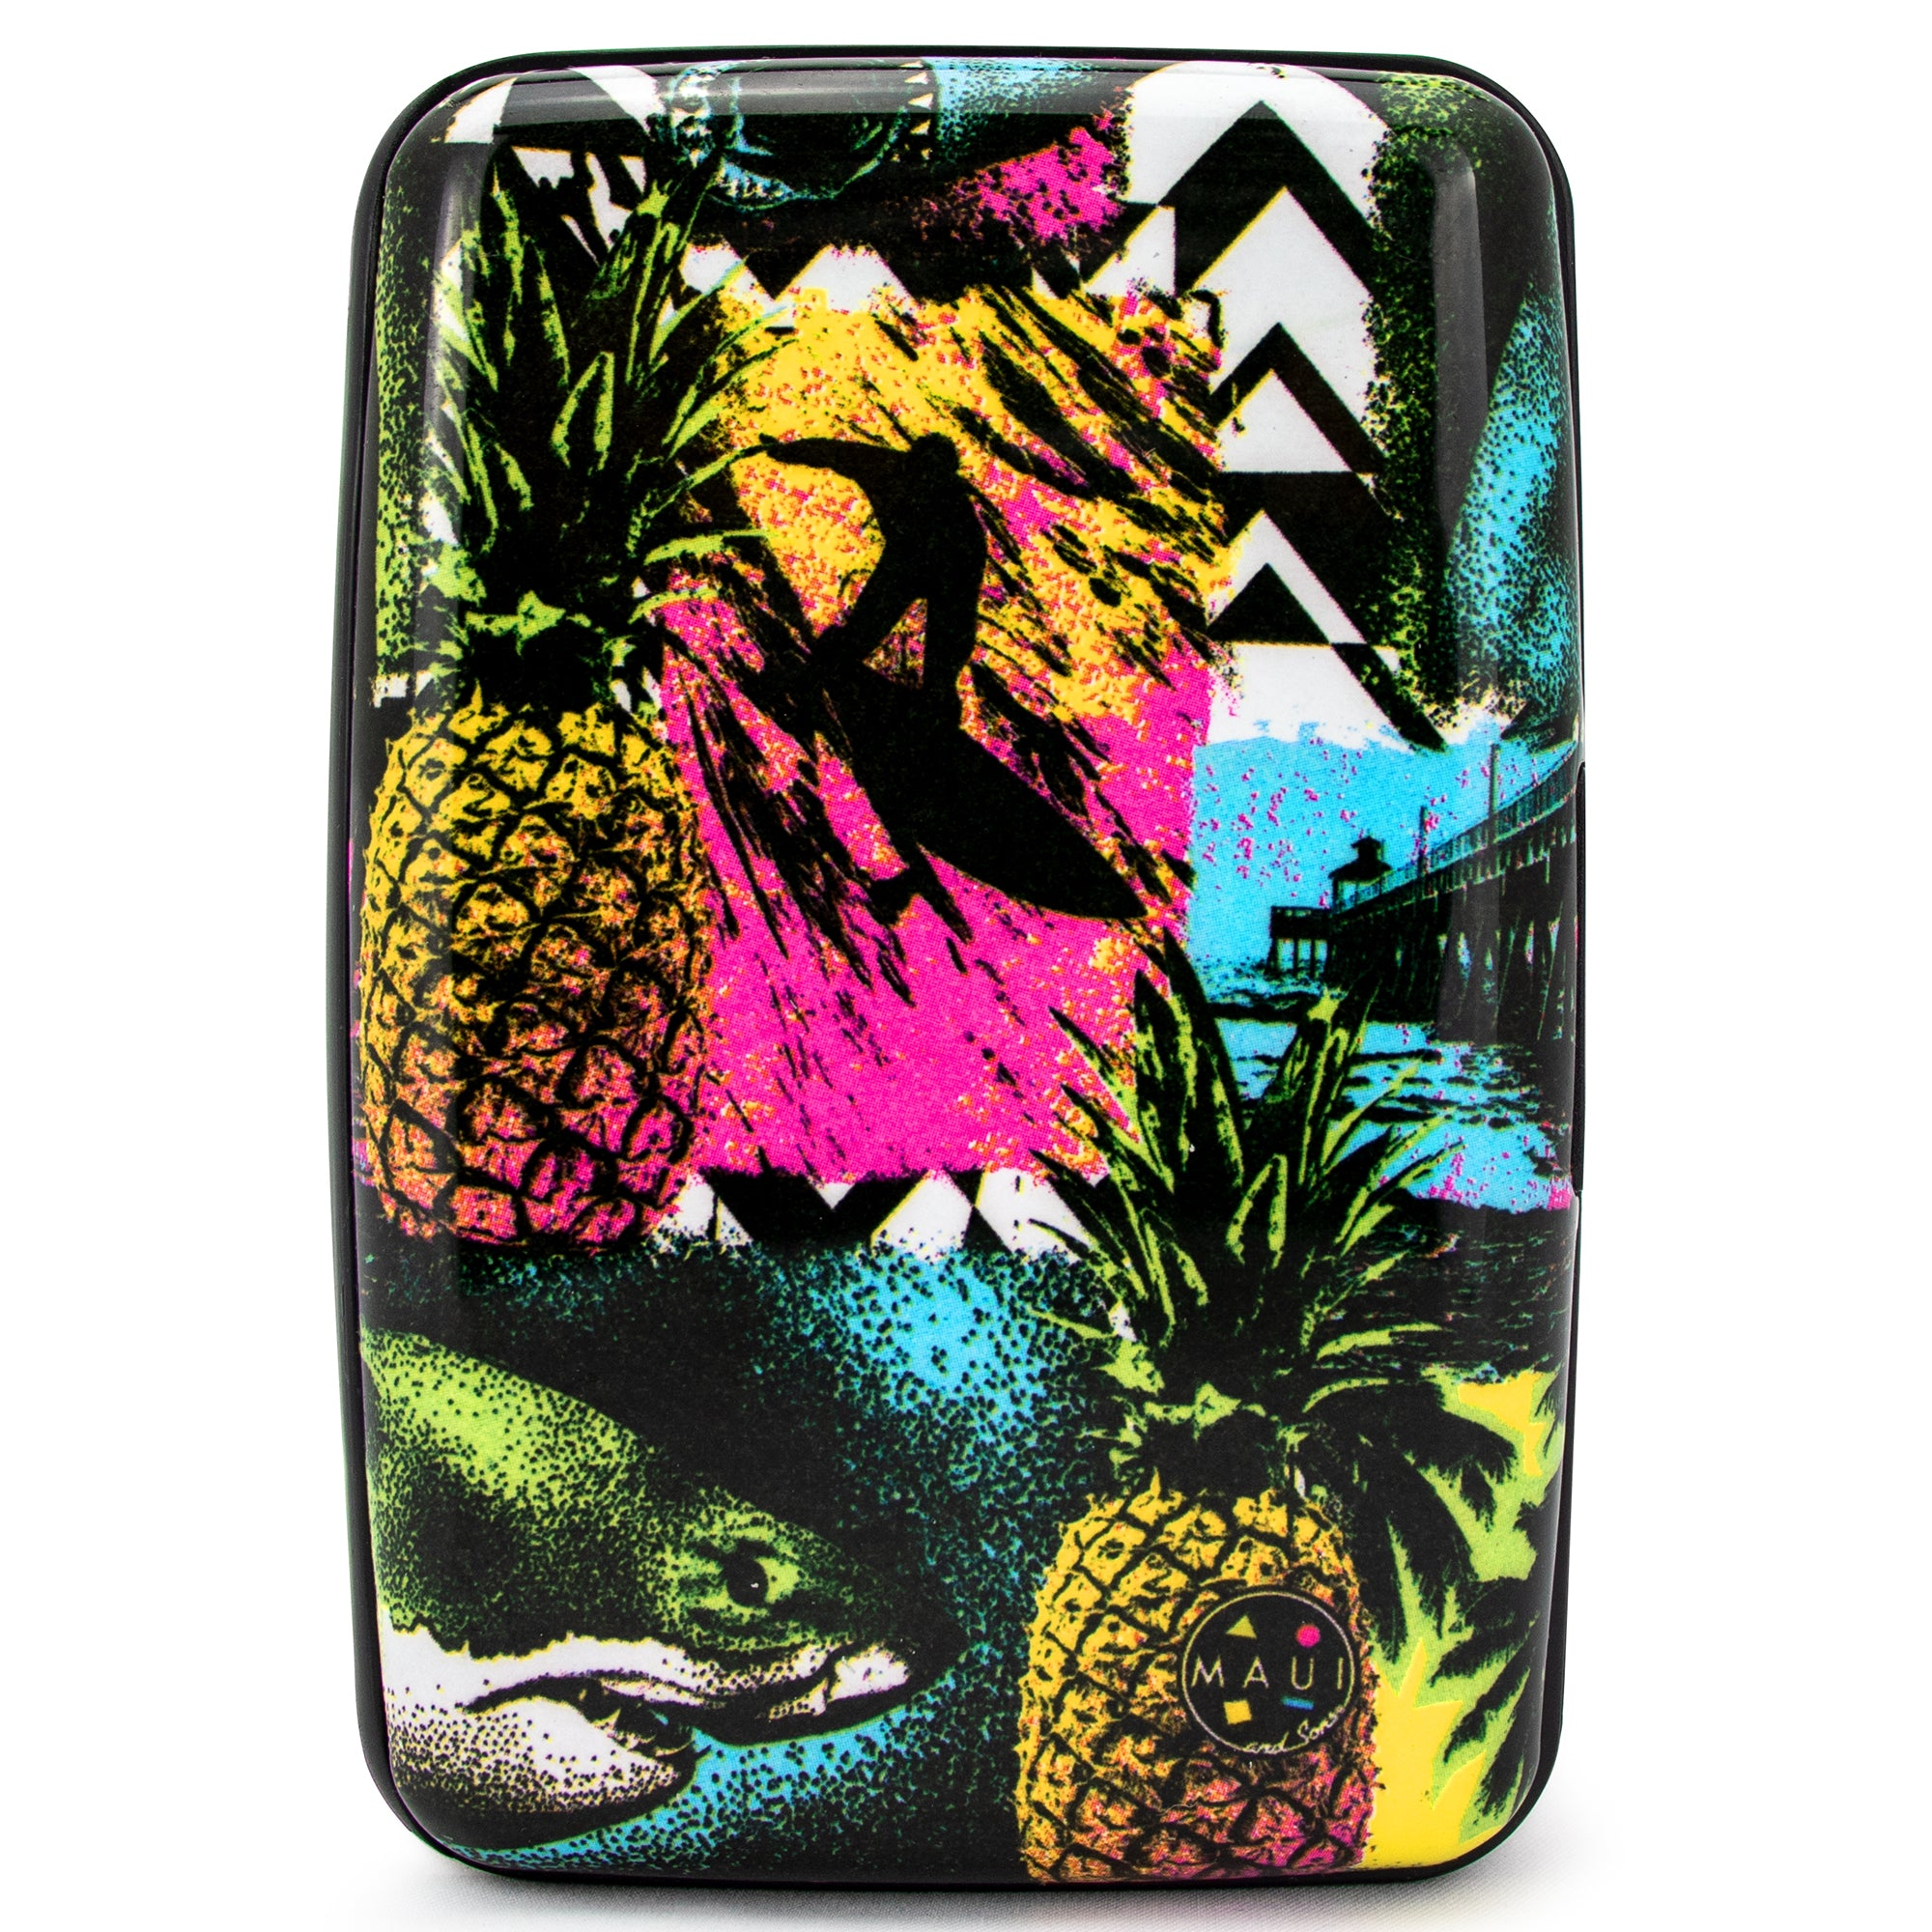 Surfer RFID Wallet & Credit Card Holder - Pineapple Surfer - Travellty